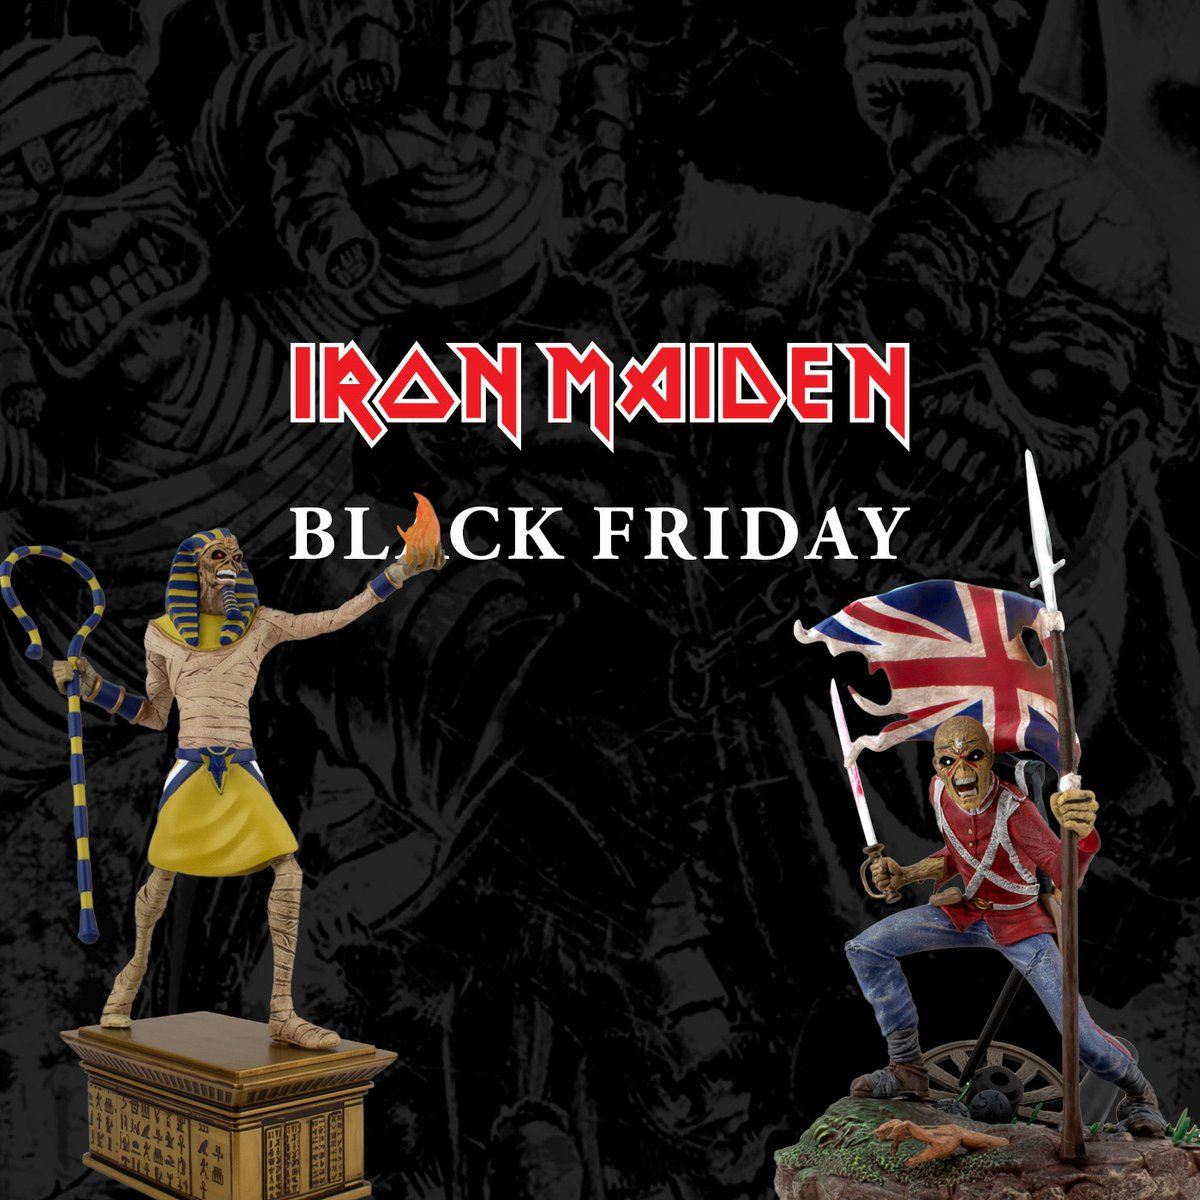 Black Friday is still going, with discounts across the Maiden store - 666.ironmaiden.com/black-friday